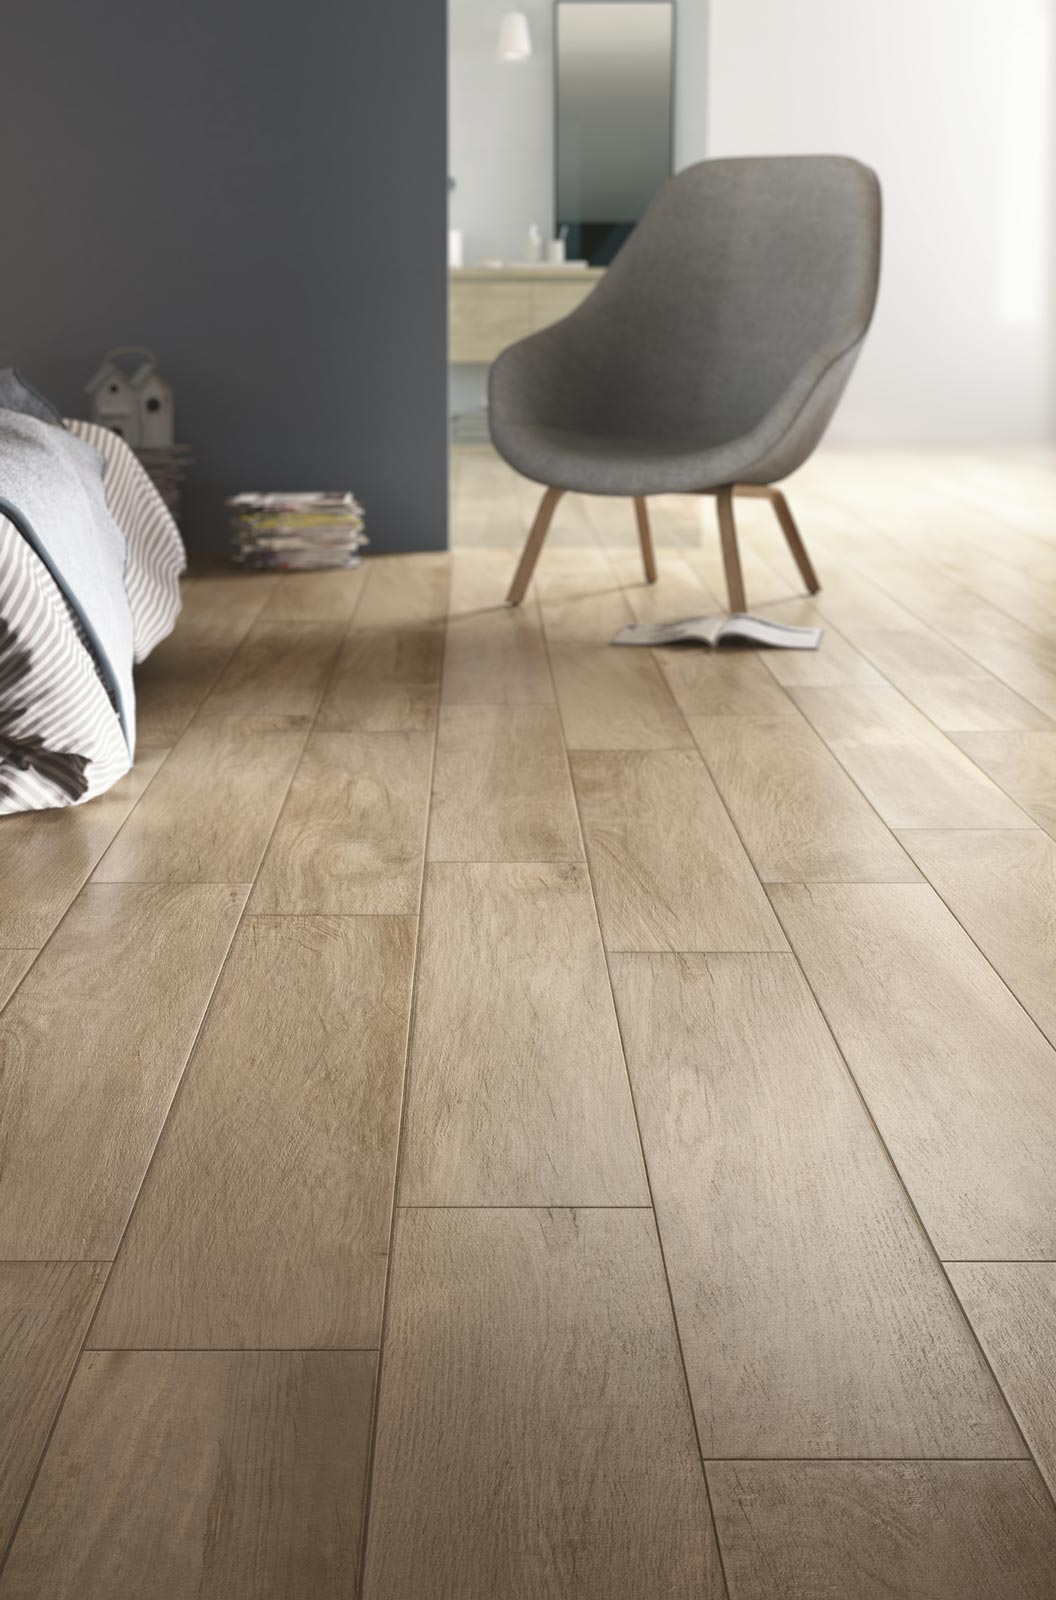 Woodplace wood effect porcelain stoneware ragno for Carrelage pour sol exterieur